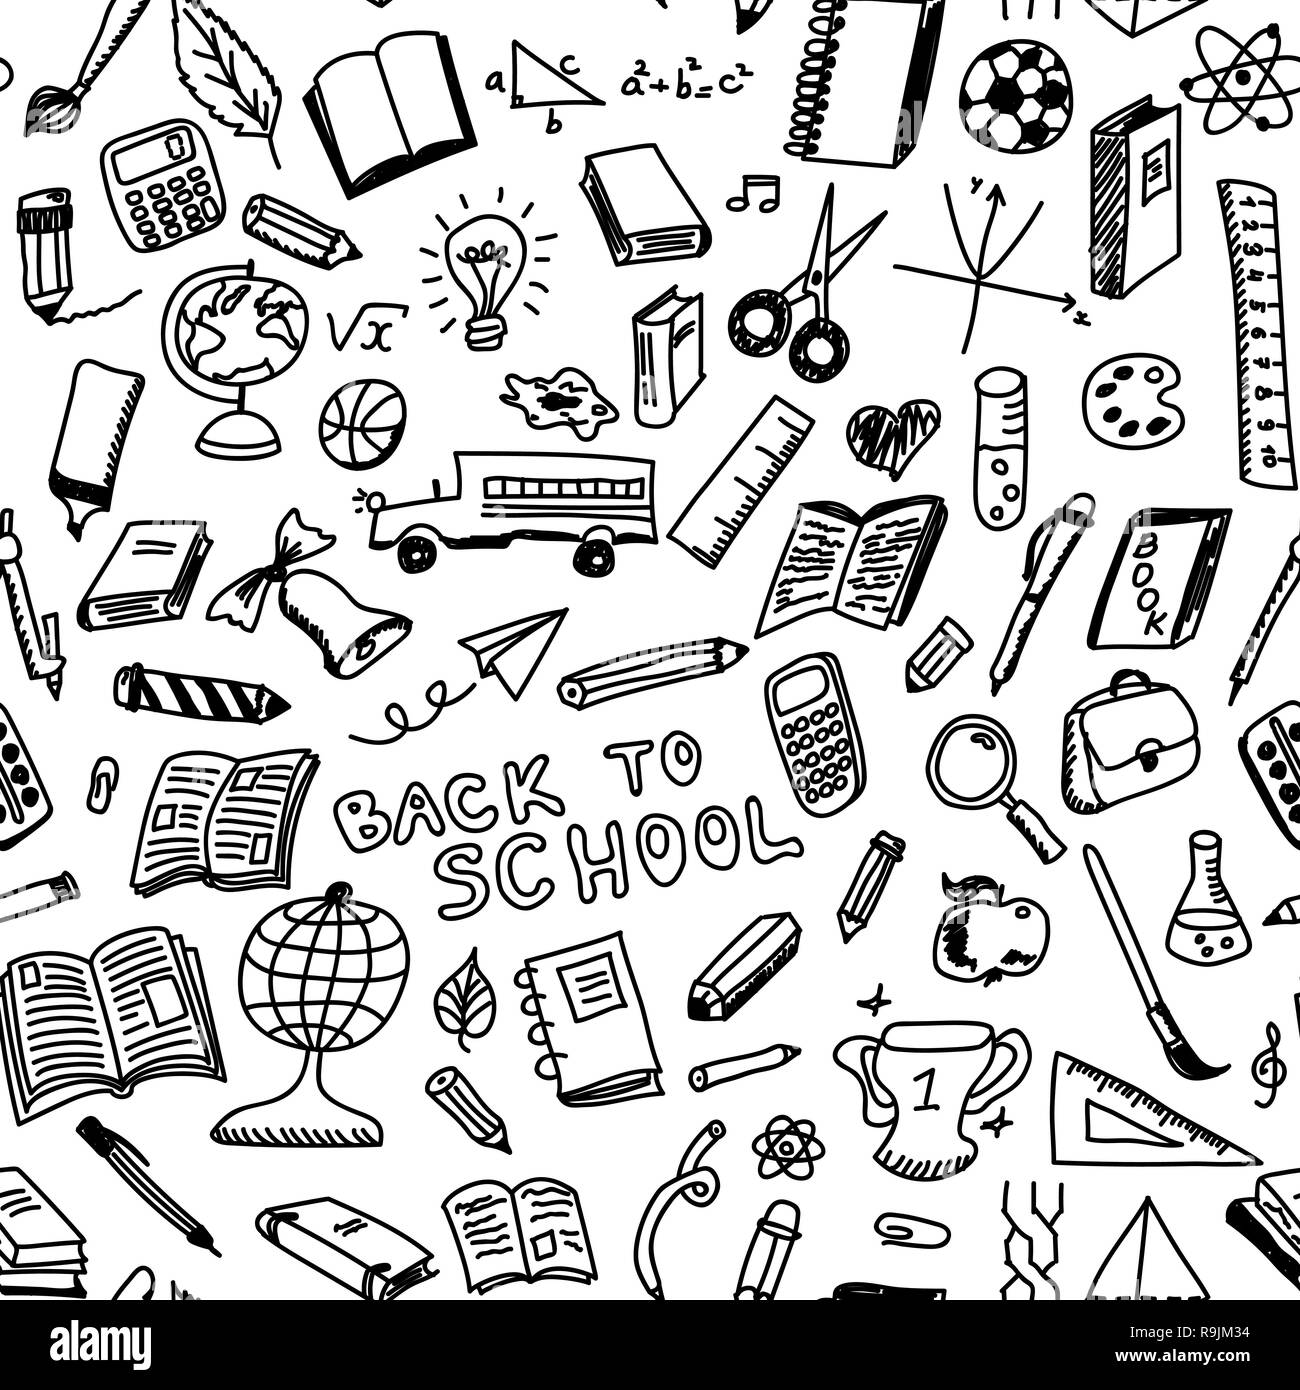 School Supplies Sketch Seamless Pattern In Doodle Style